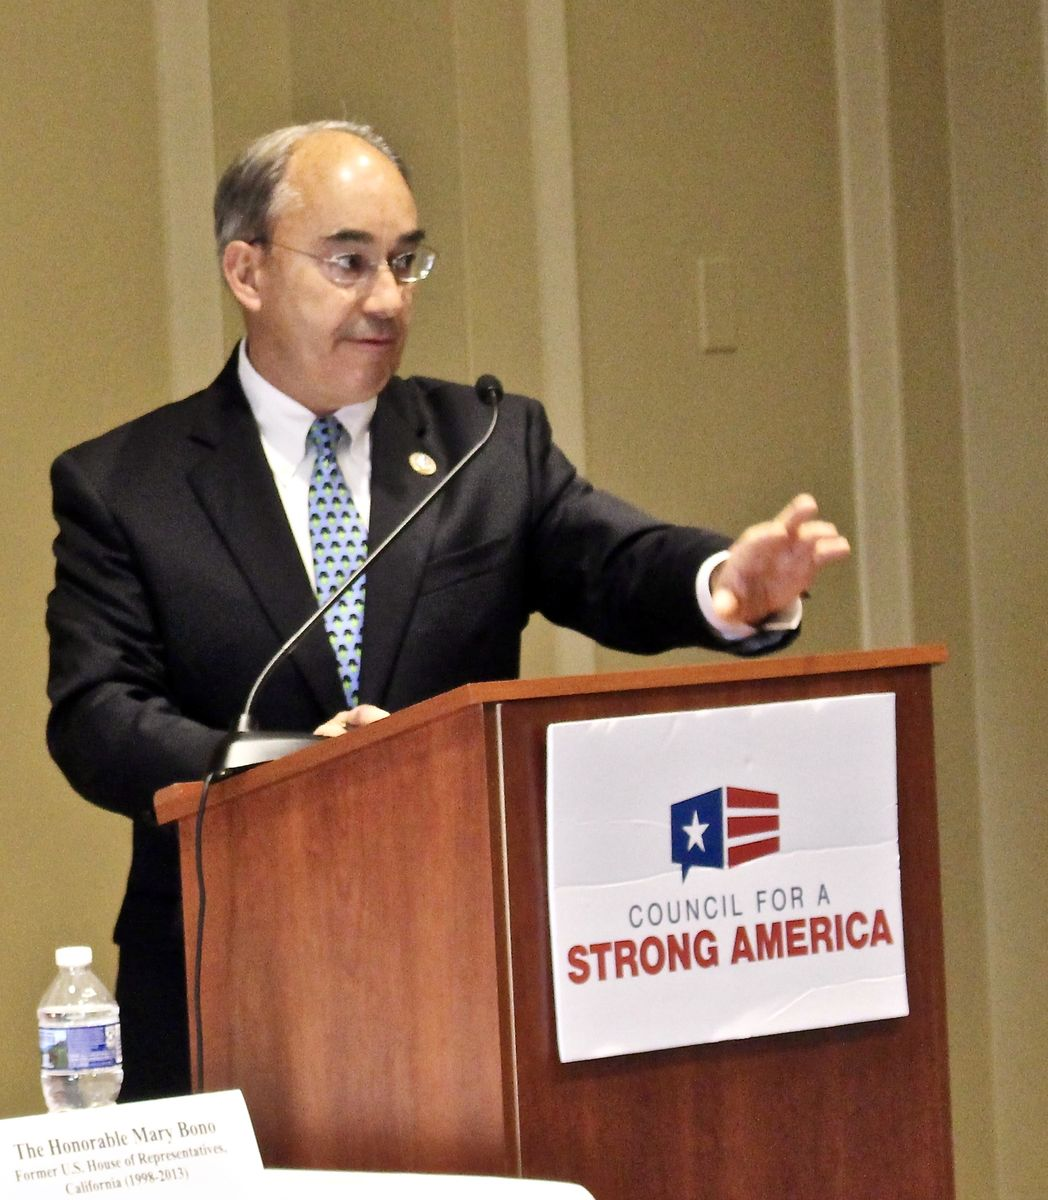 Rep. Bruce Poliquin (R-ME) speaks about how opioids have impacted his home state